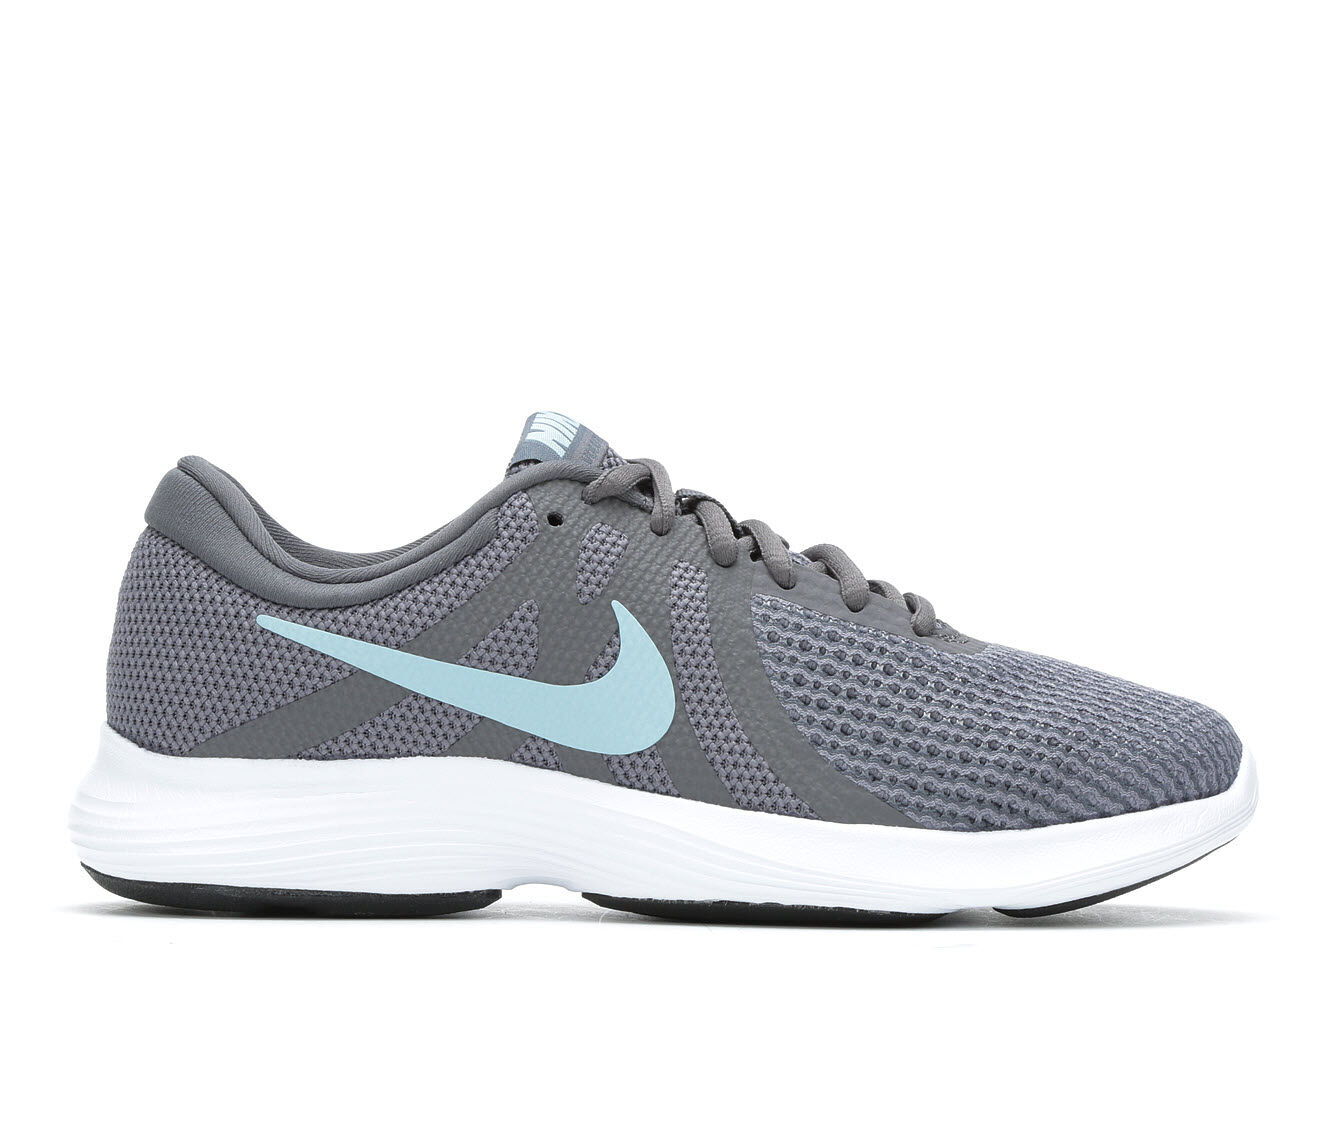 For Sale Women's Nike Revolution 4 Running Shoes Grey/Blue/Wht